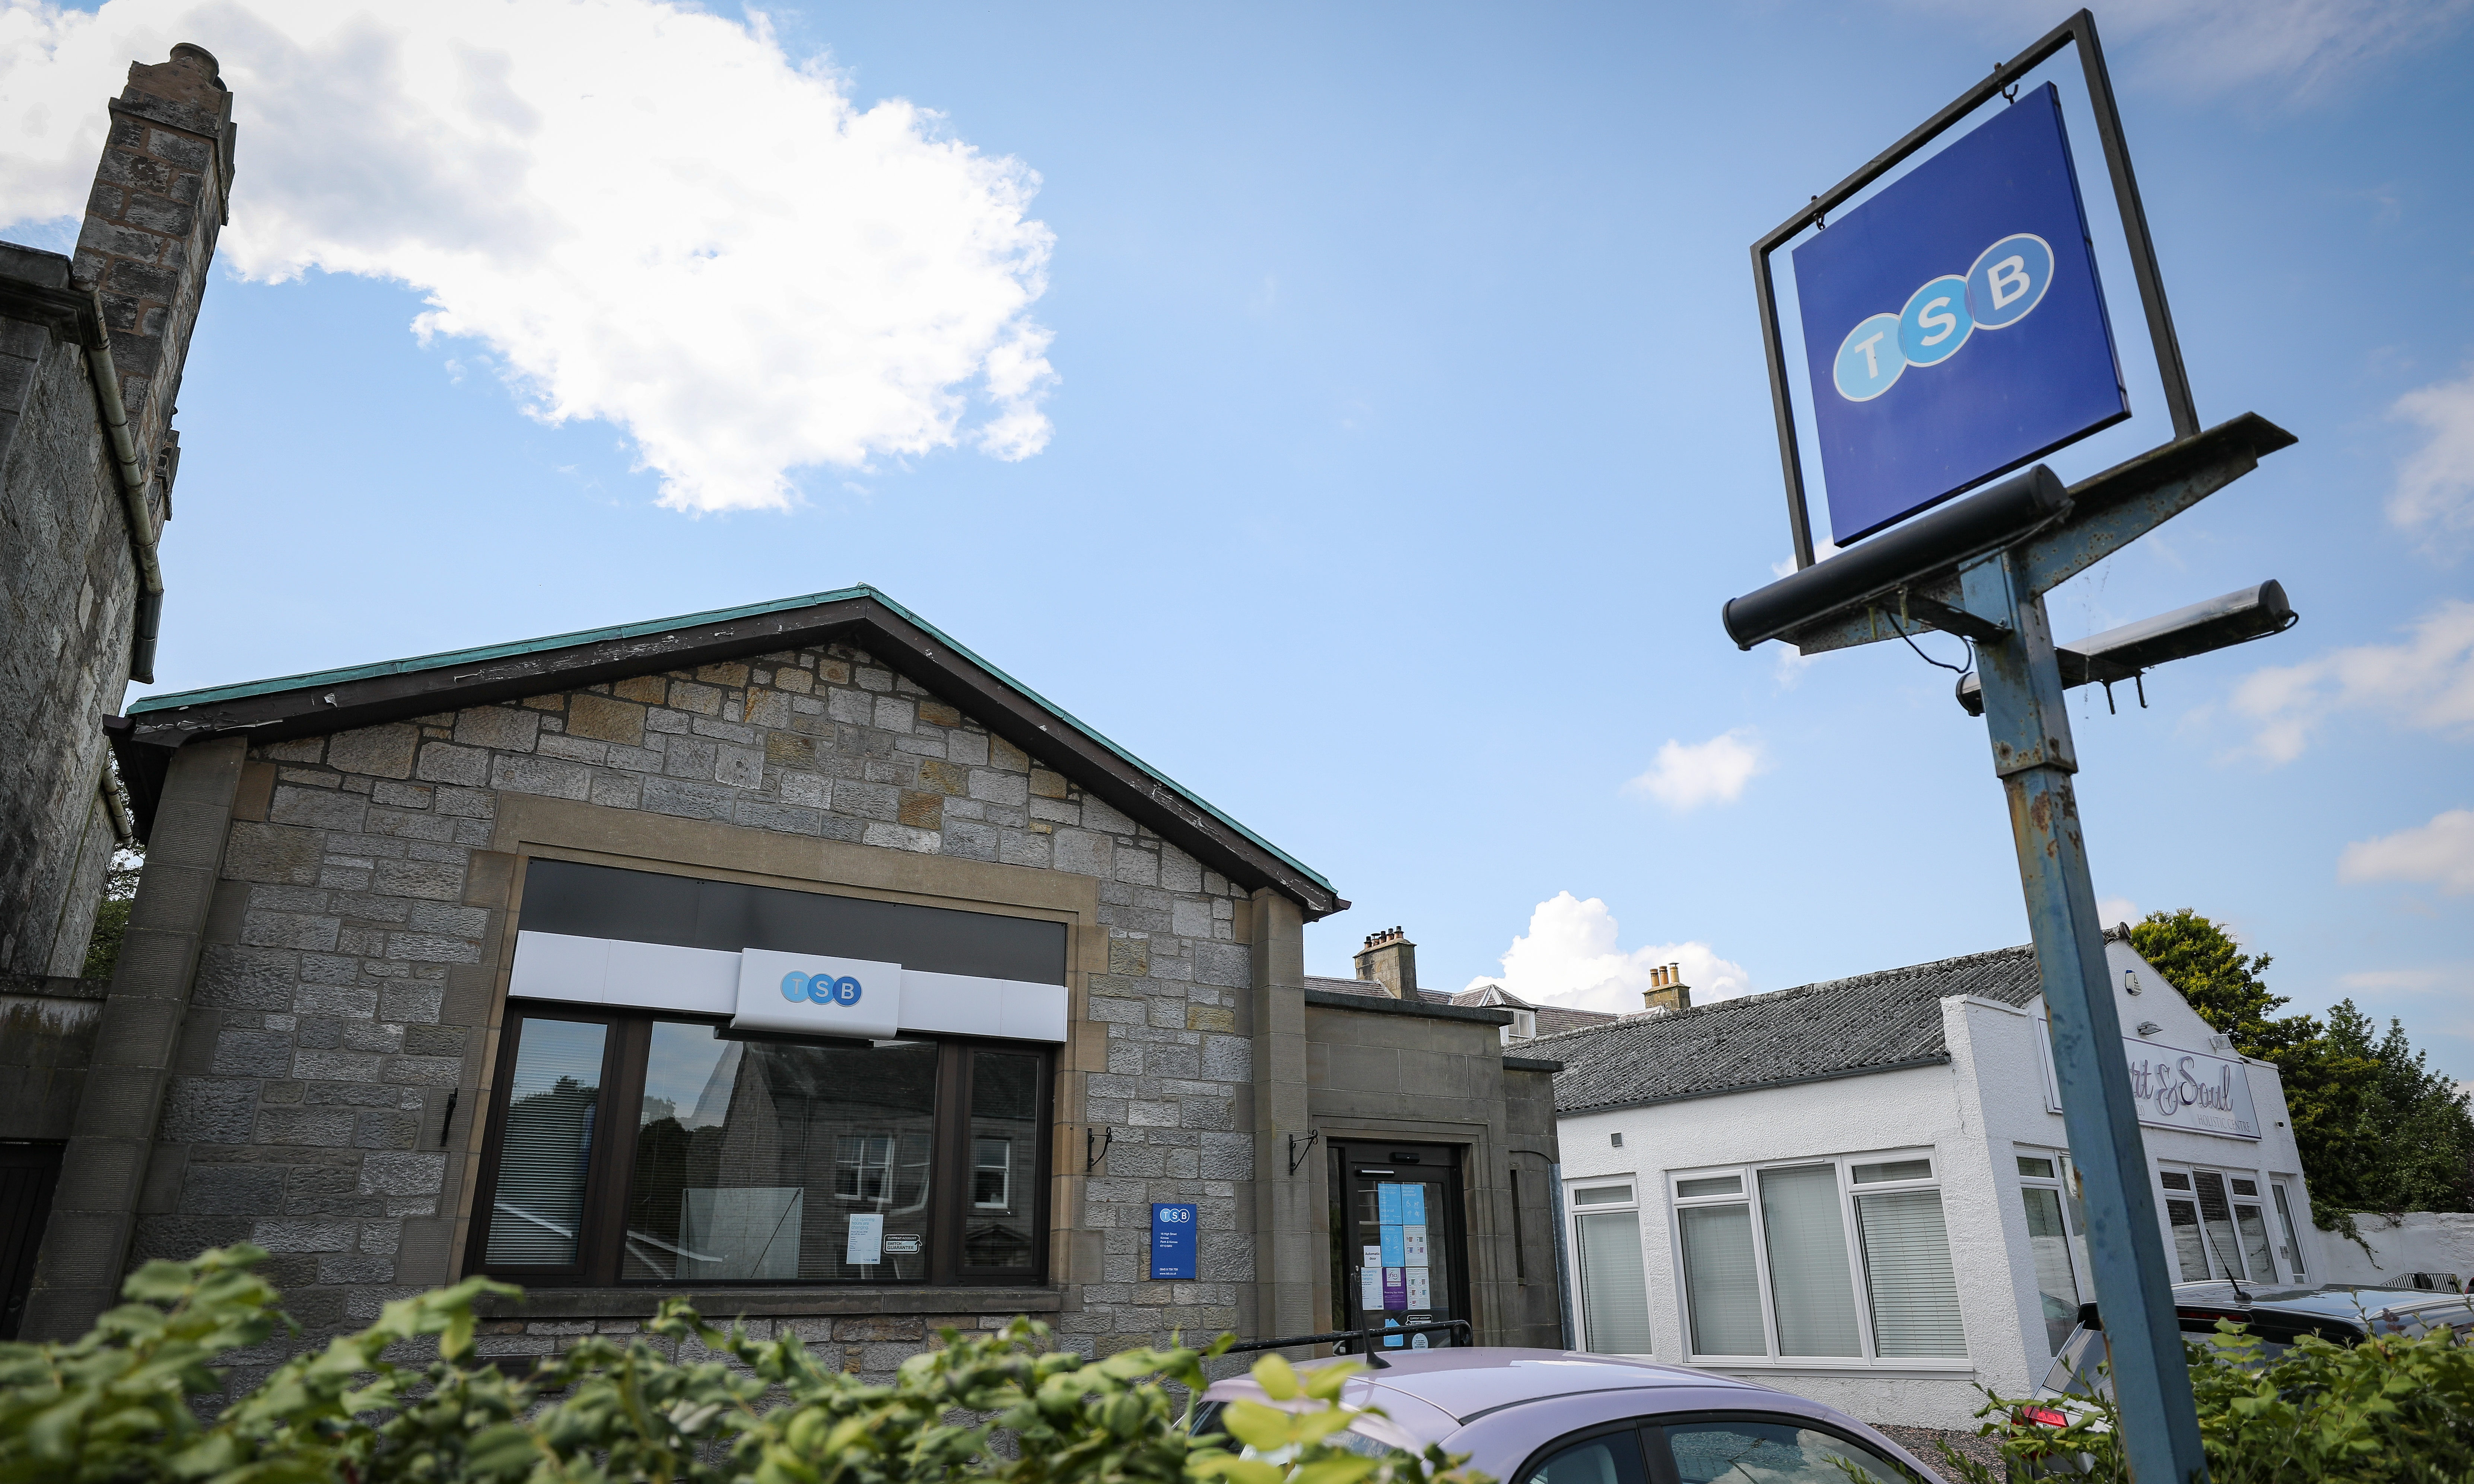 TSB branch in Kinross